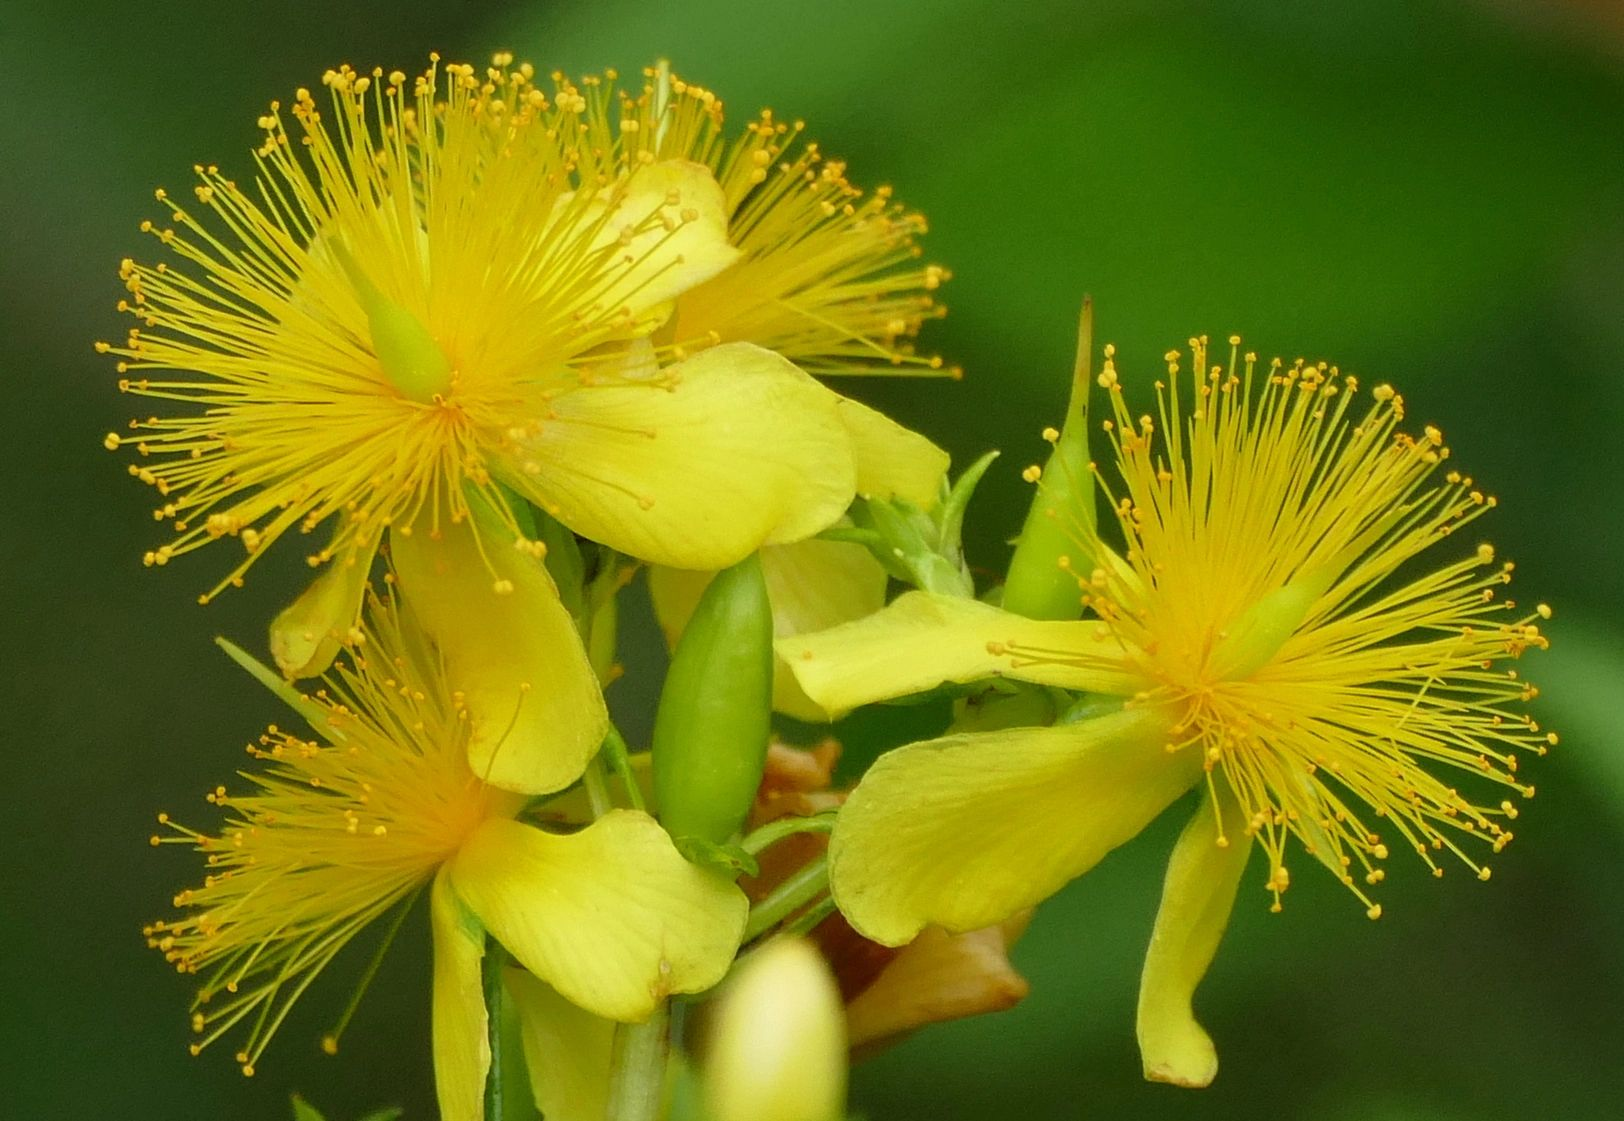 "{""blocks"":[{""key"":""8j0fh"",""text"":""Hypericum prolificum Shrubby St. John's wort - potted plants email john@easywildflowers.com "",""type"":""unstyled"",""depth"":0,""inlineStyleRanges"":[],""entityRanges"":[],""data"":{}}],""entityMap"":{}}"